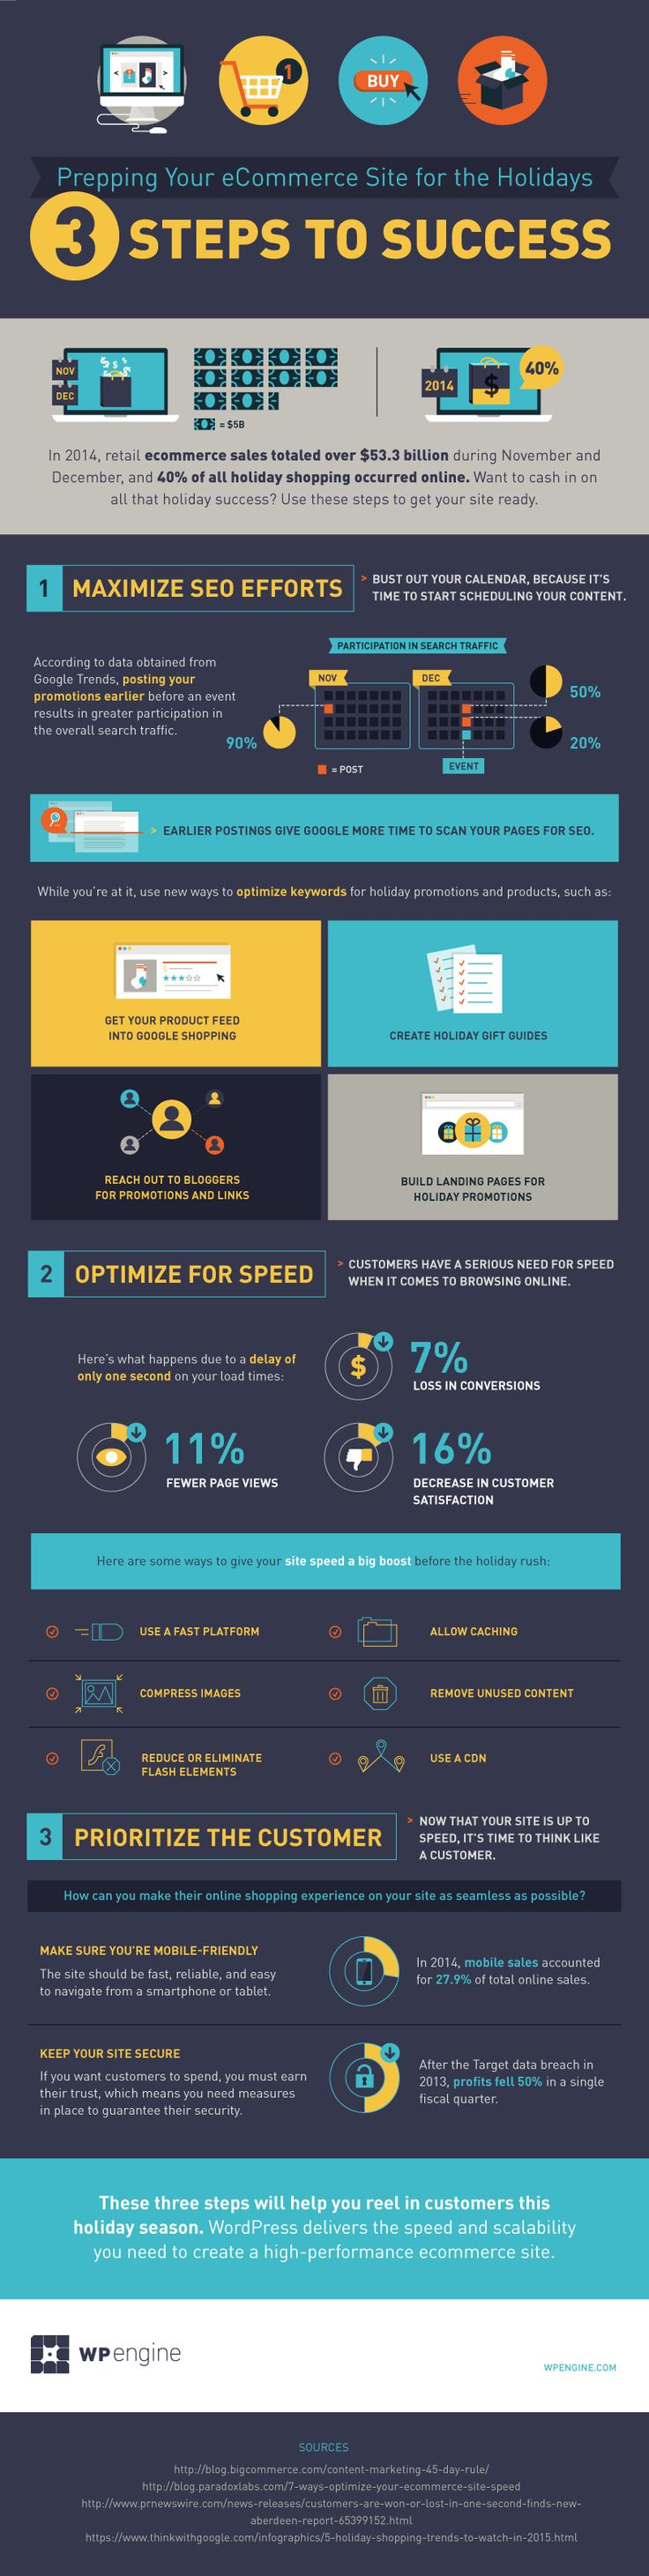 Advertising-Infographics-The-holidays-are-approaching Advertising Infographics : WPEngine_Ecomm-3Steps_D2_Oct14